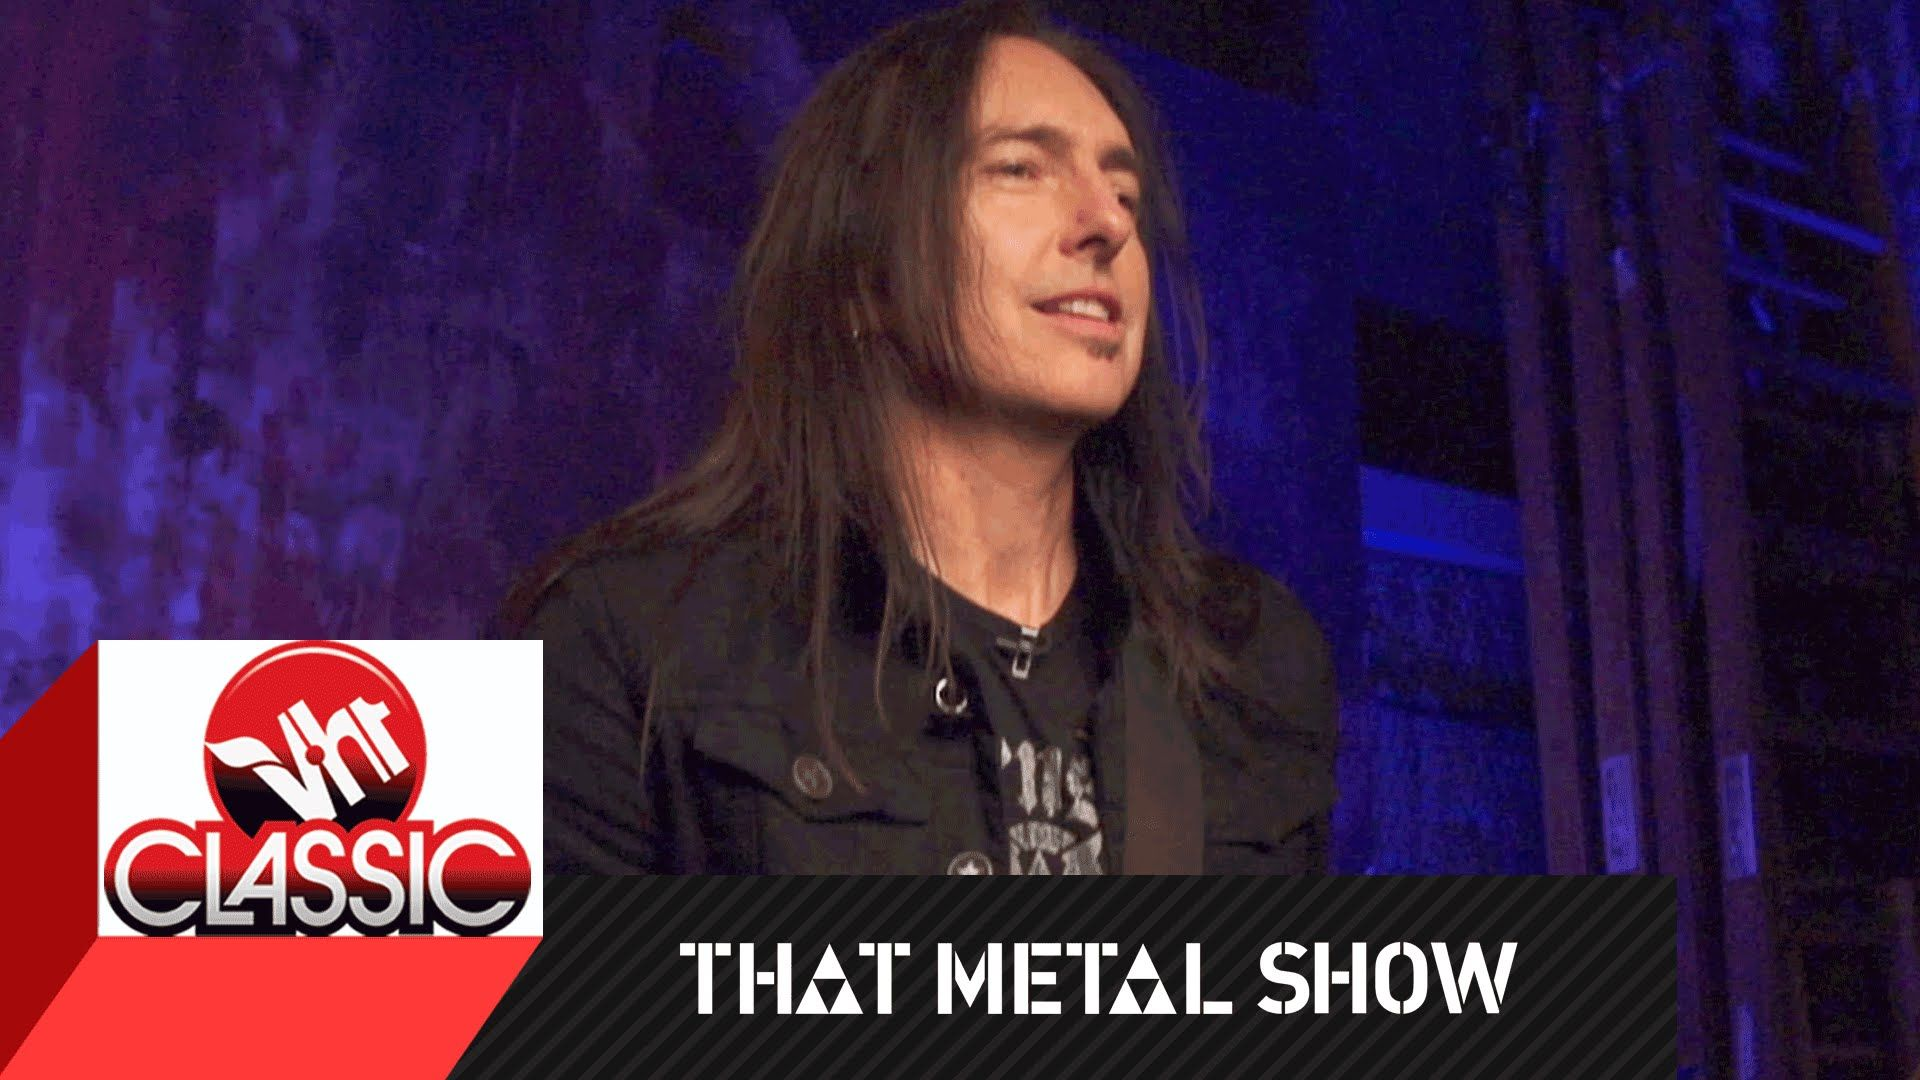 That Metal Show | Damon Johnson: Behind The Scenes | VH1 Classic